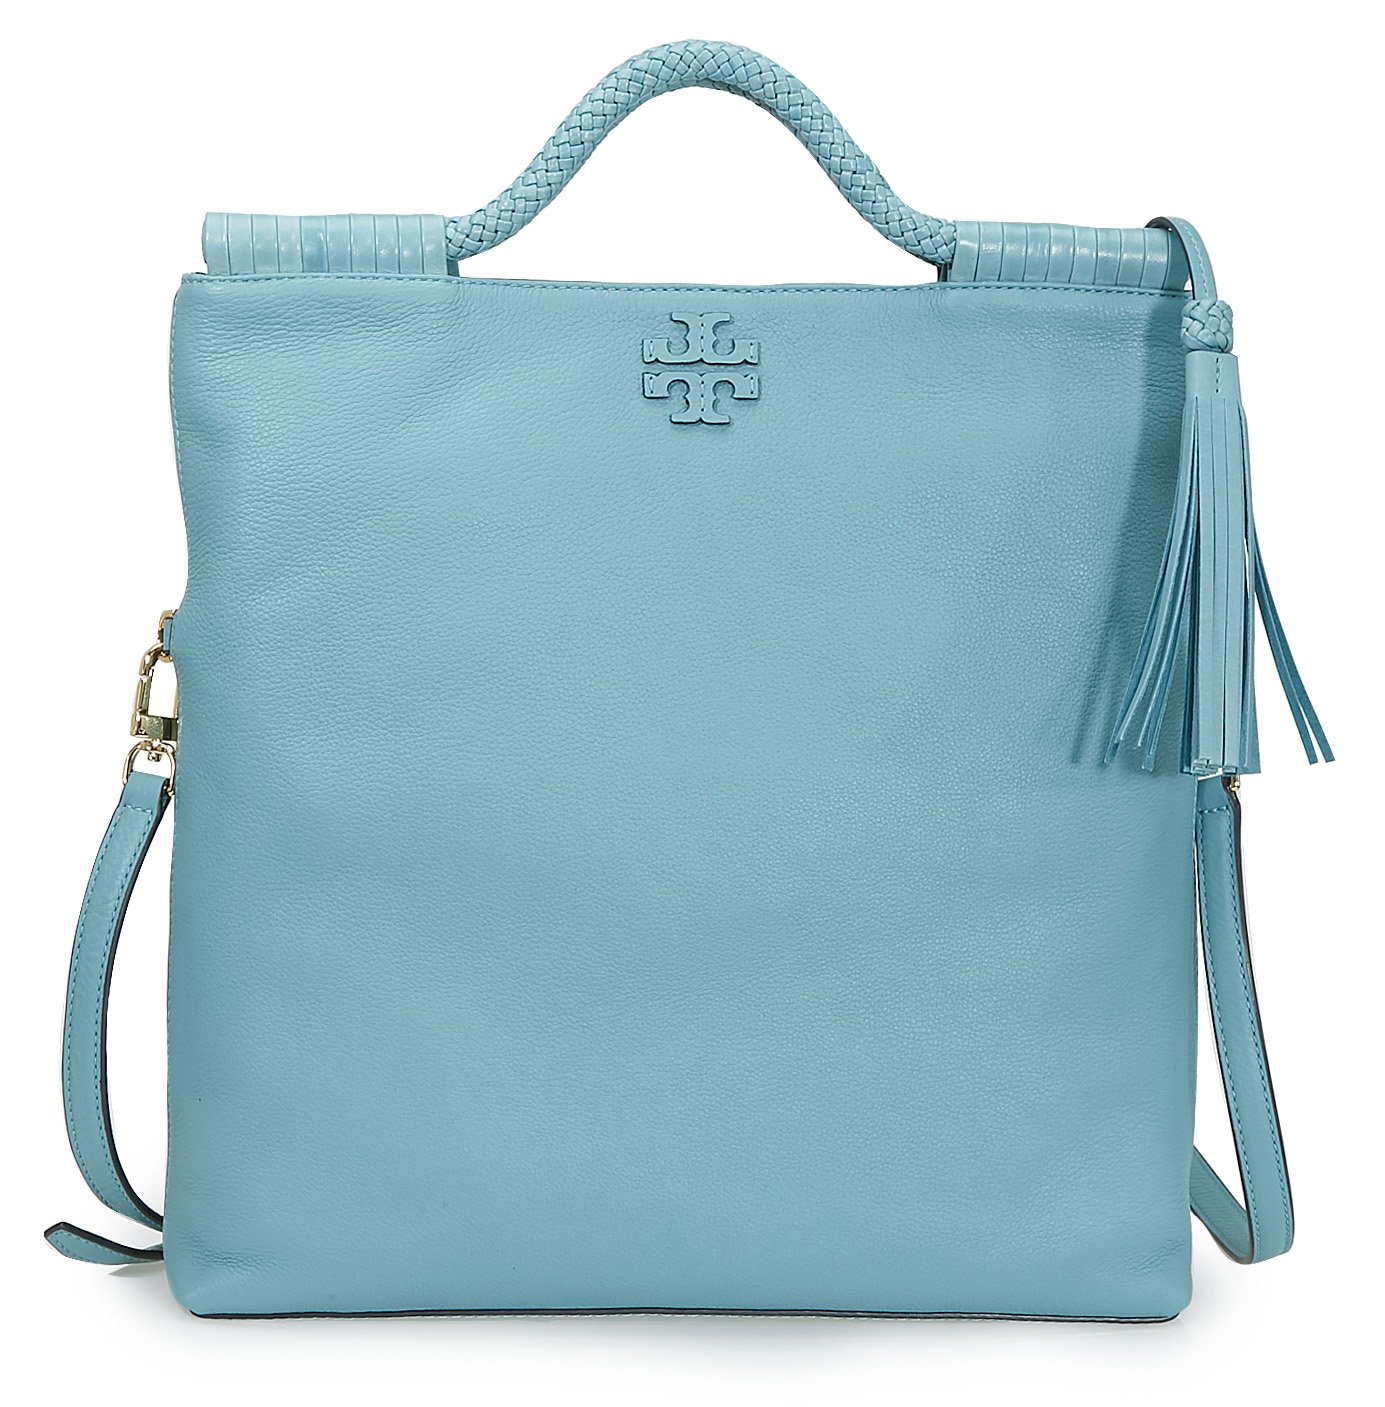 1b26438dc163 Buy Tory Burch Taylor Convertible Fold-Over Crossbody - Blue Online at Low  Prices in India - Amazon.in